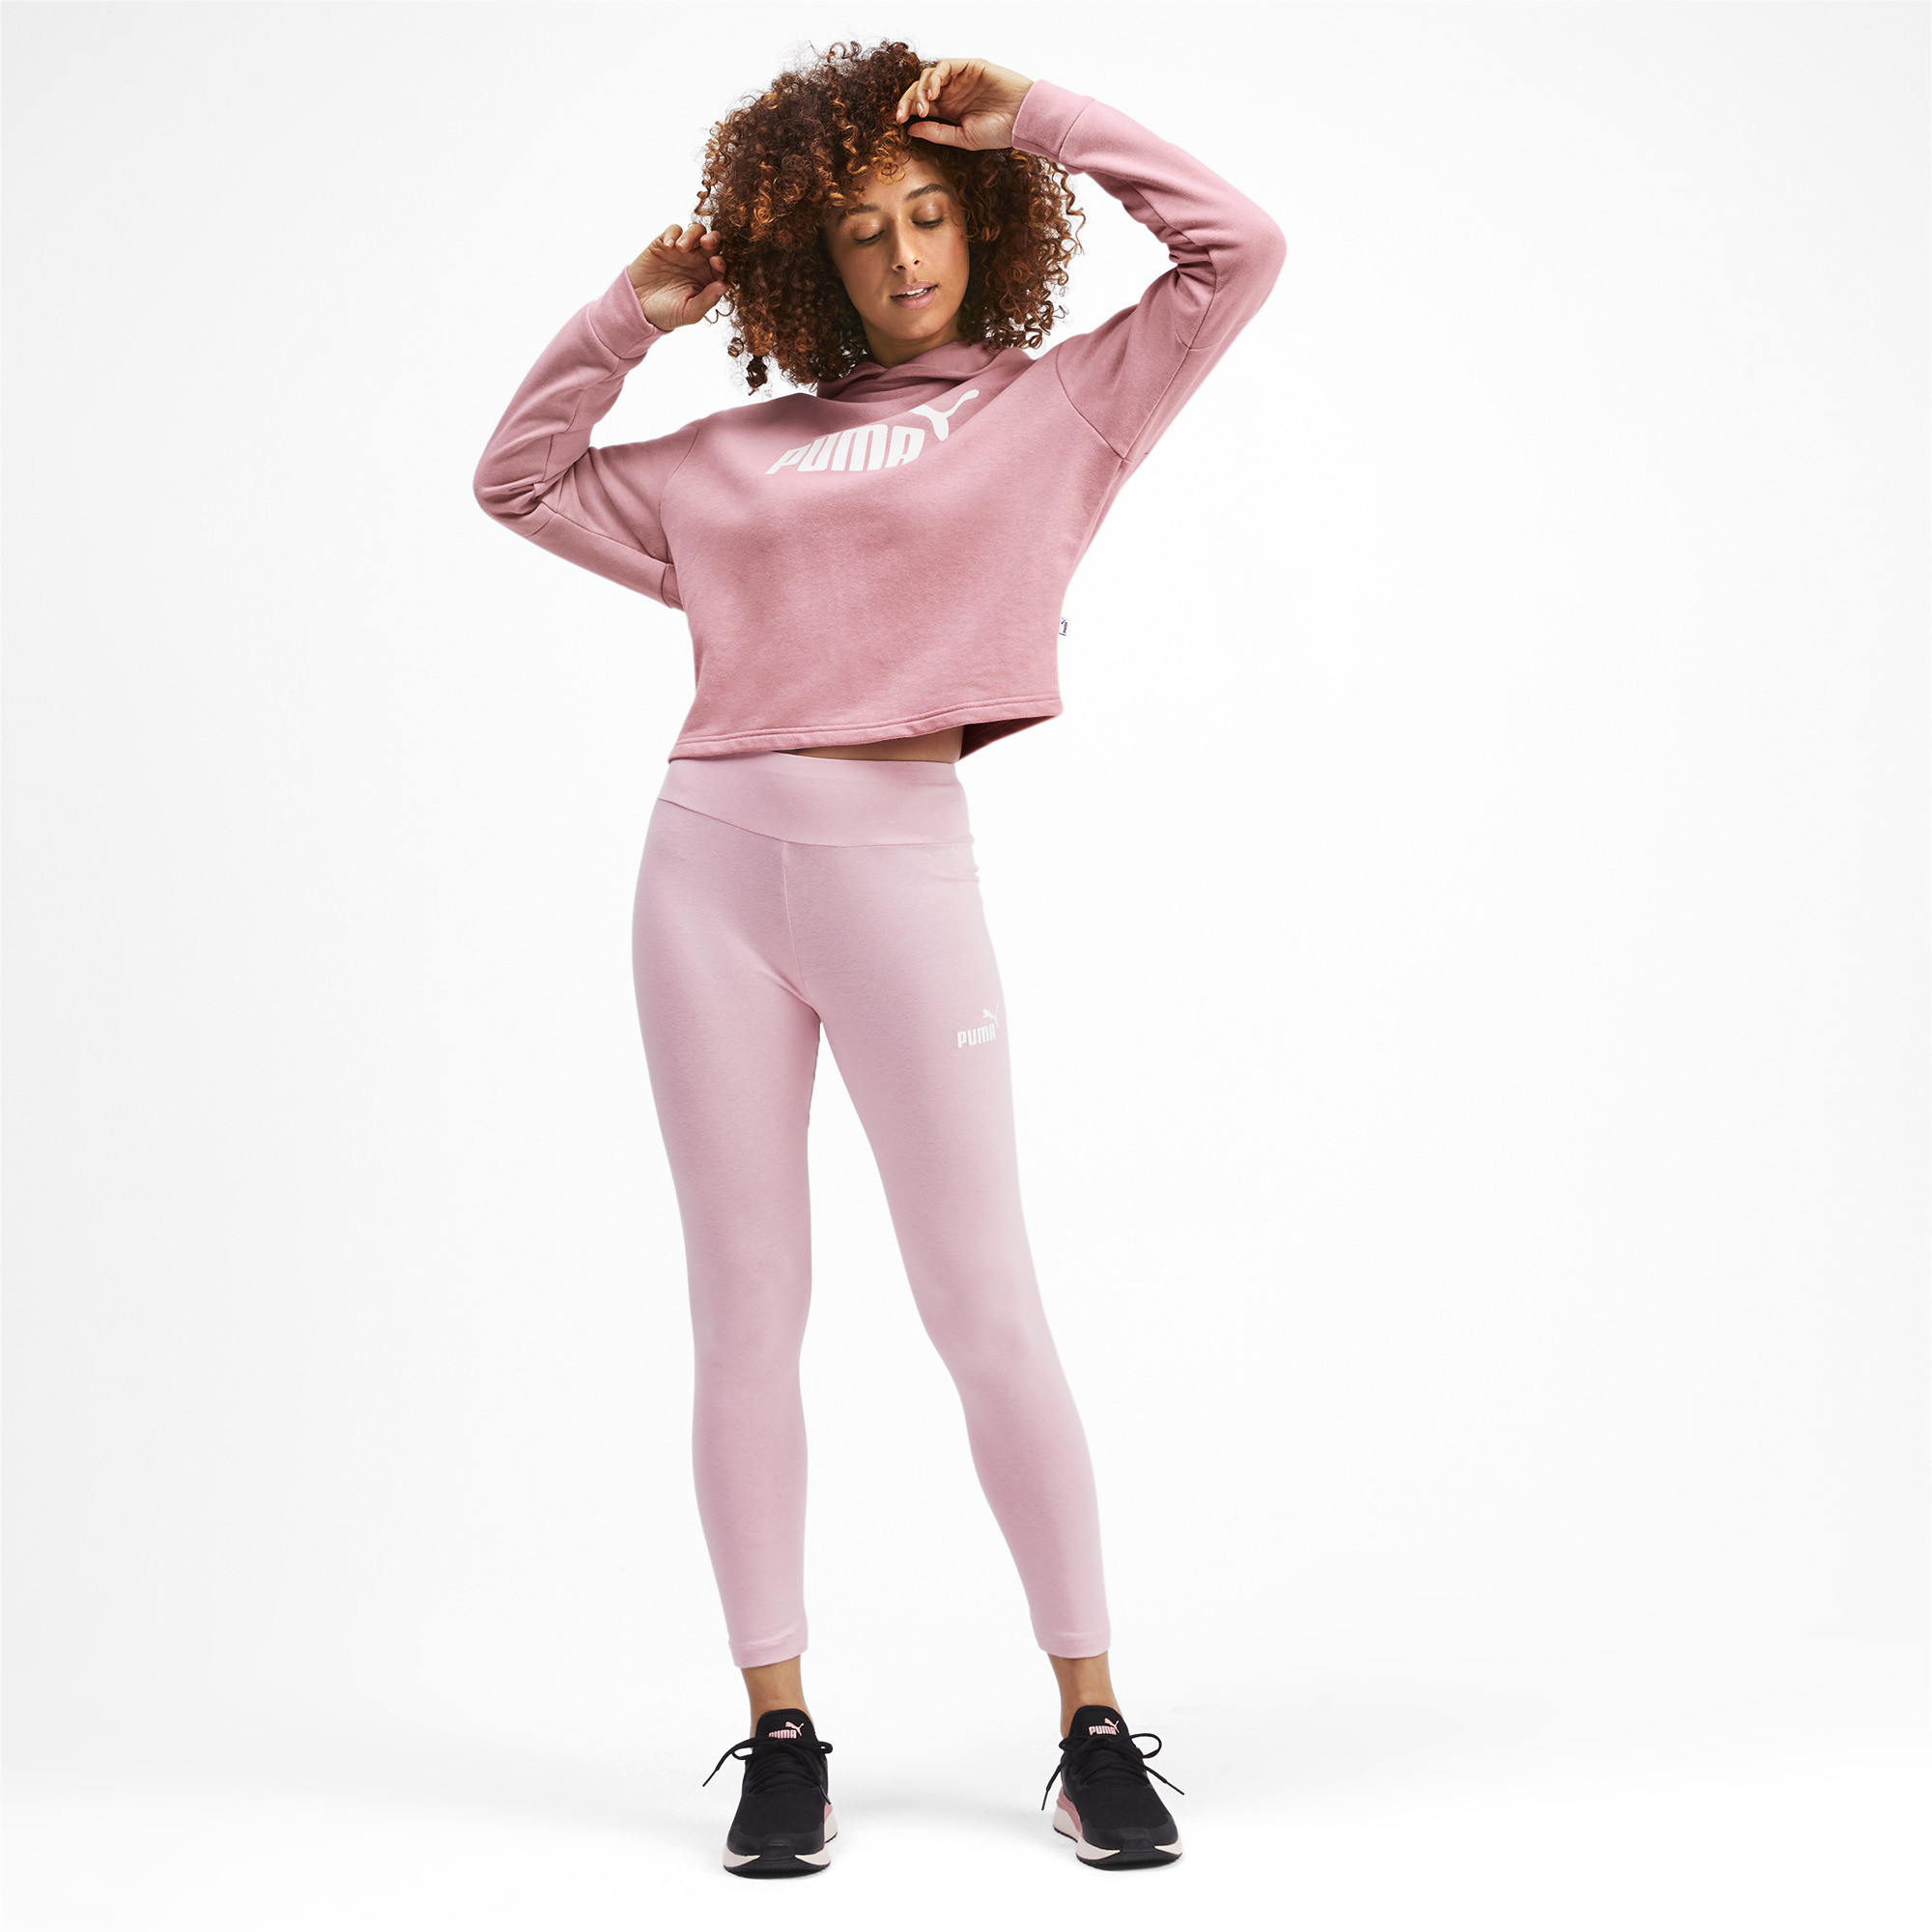 PUMA-Amplified-Women-039-s-Cropped-Hoodie-Women-Sweat-Basics thumbnail 11